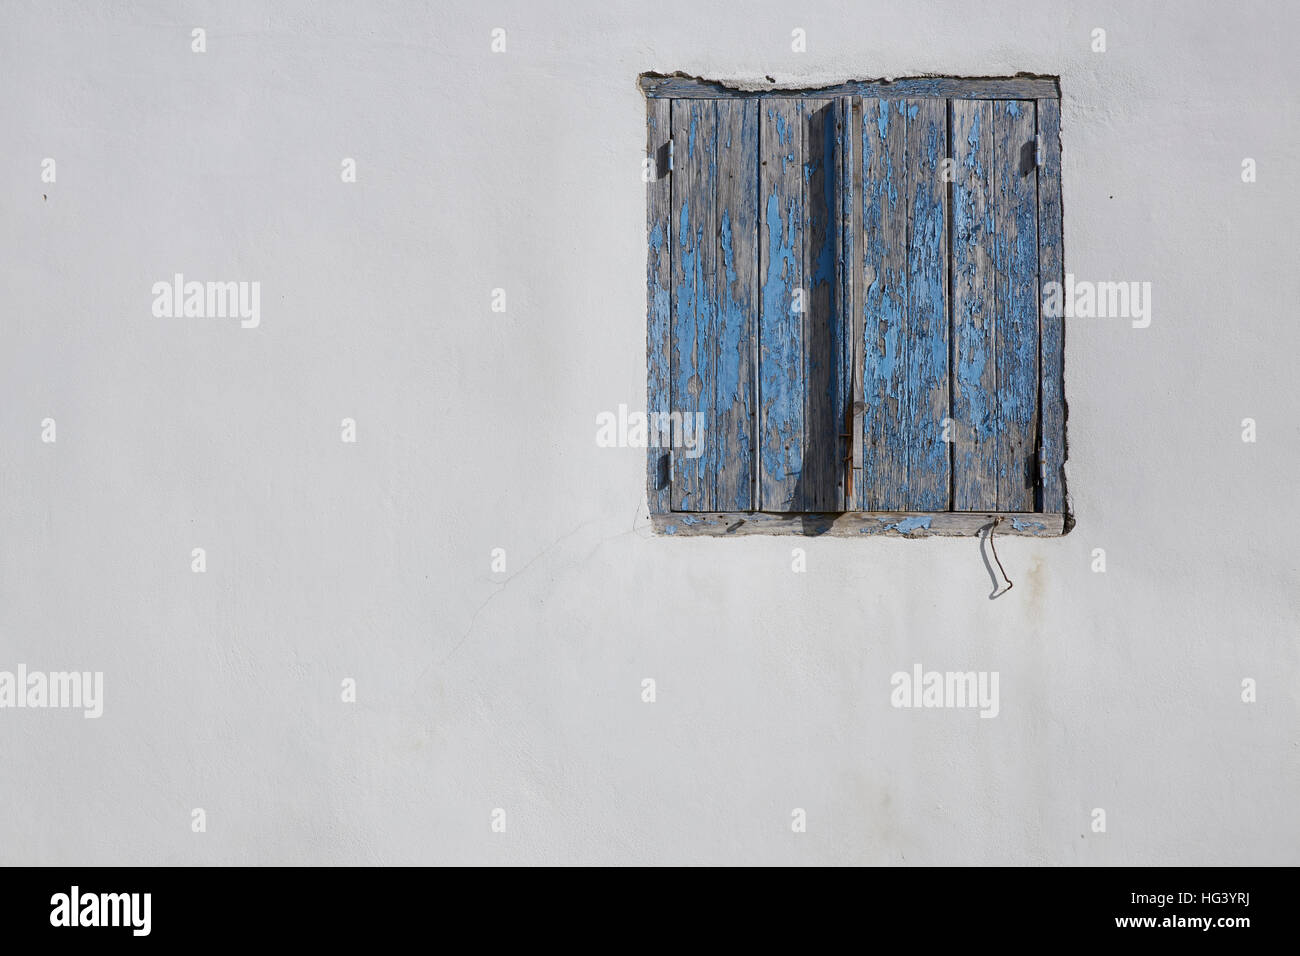 Paphos, Cyprus. White wall, window with light blue shutters. - Stock Image